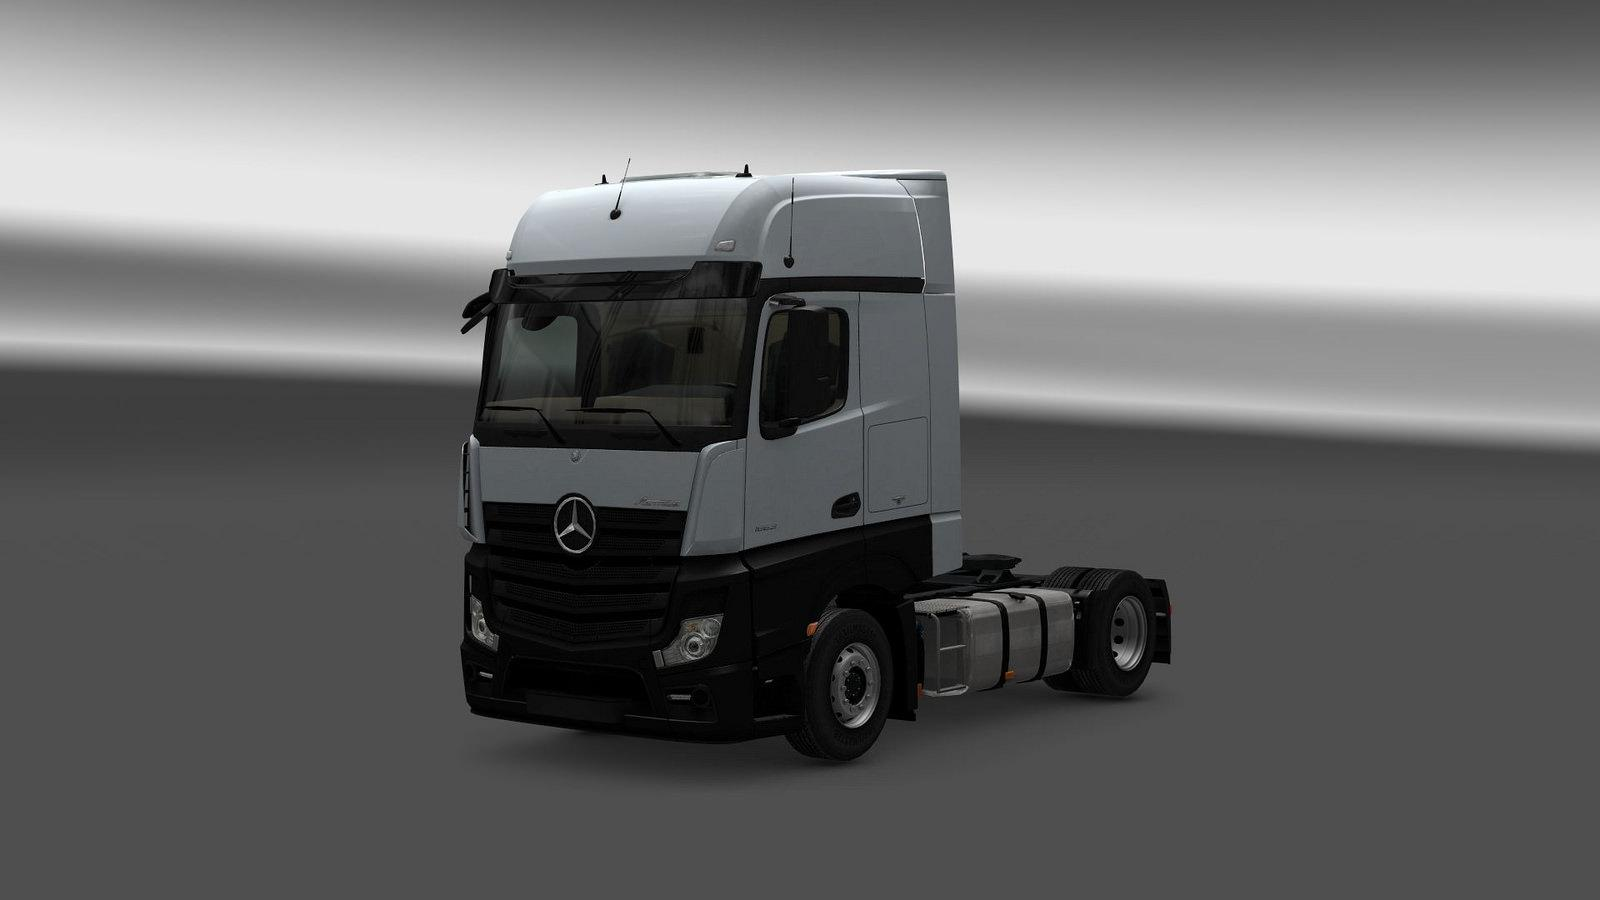 mercedes actros mp3 reworked v1 5 ets2 mods euro truck simulator 2 truck mods scs. Black Bedroom Furniture Sets. Home Design Ideas